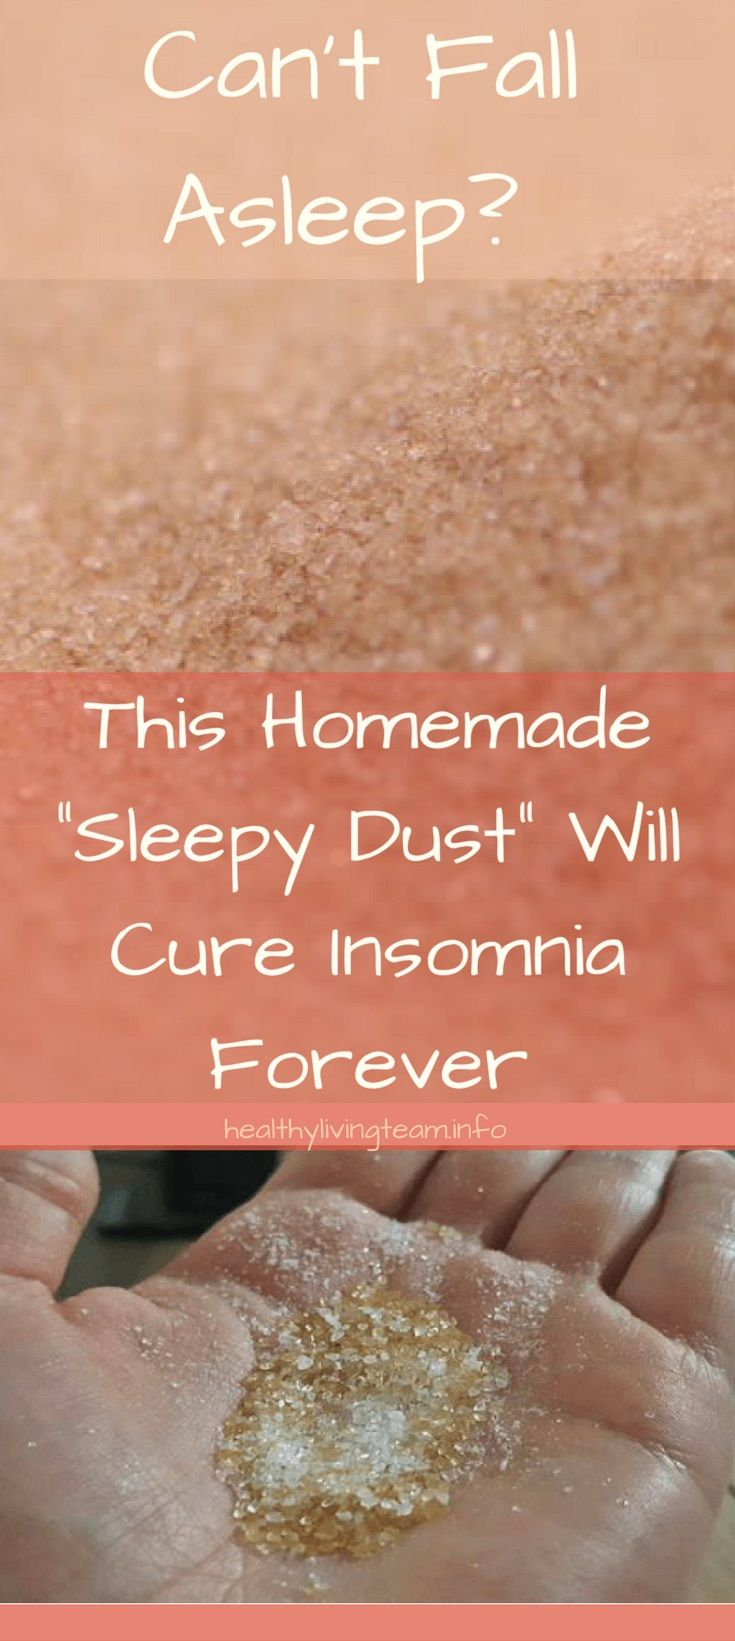 """Can't Fall Asleep? This Homemade """"Sleepy Dust"""" Will Cure Insomnia Forever"""